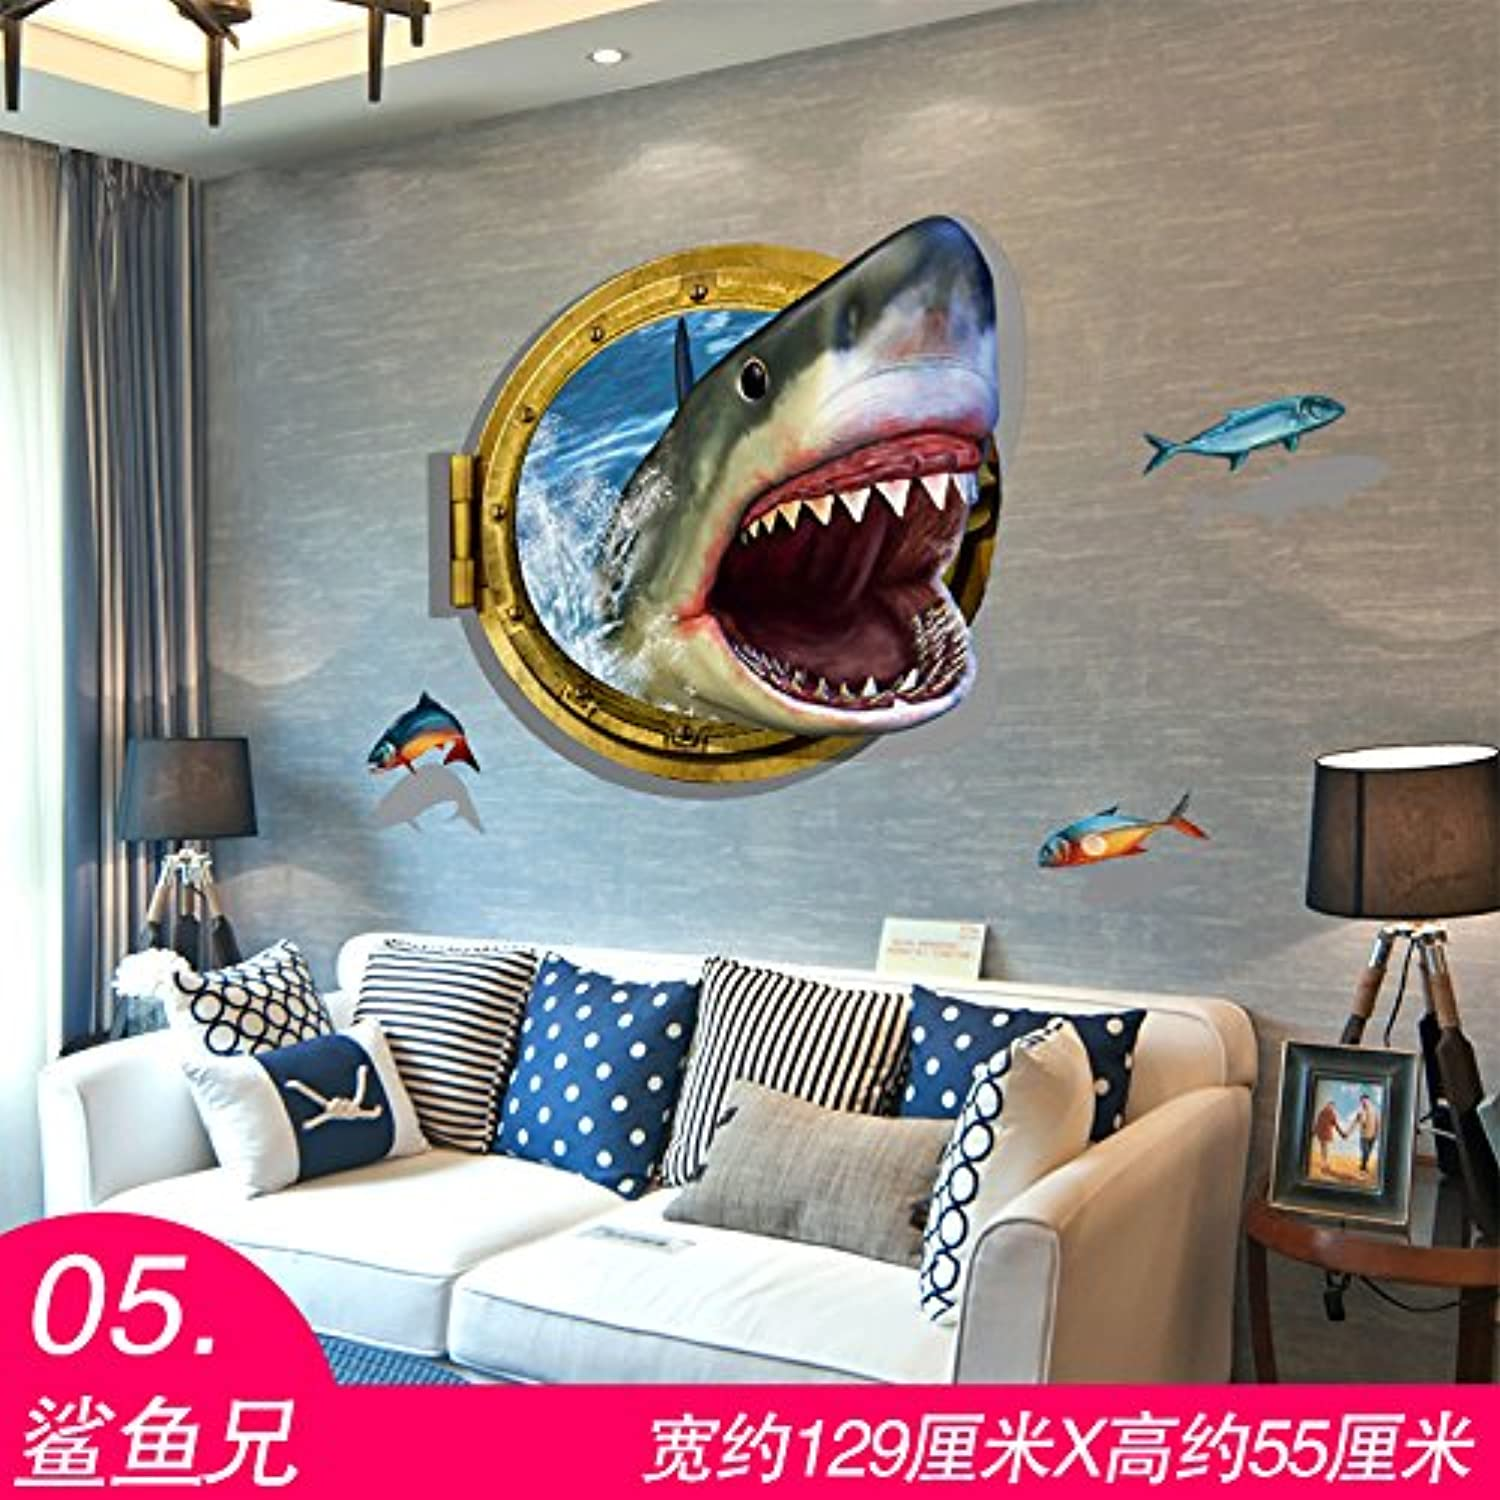 Znzbzt Wall Mount 3D Posters Sitting Snugly Against The Background of The Waterproof SelfAdhesive Wall Decals,05 Sharks, Large